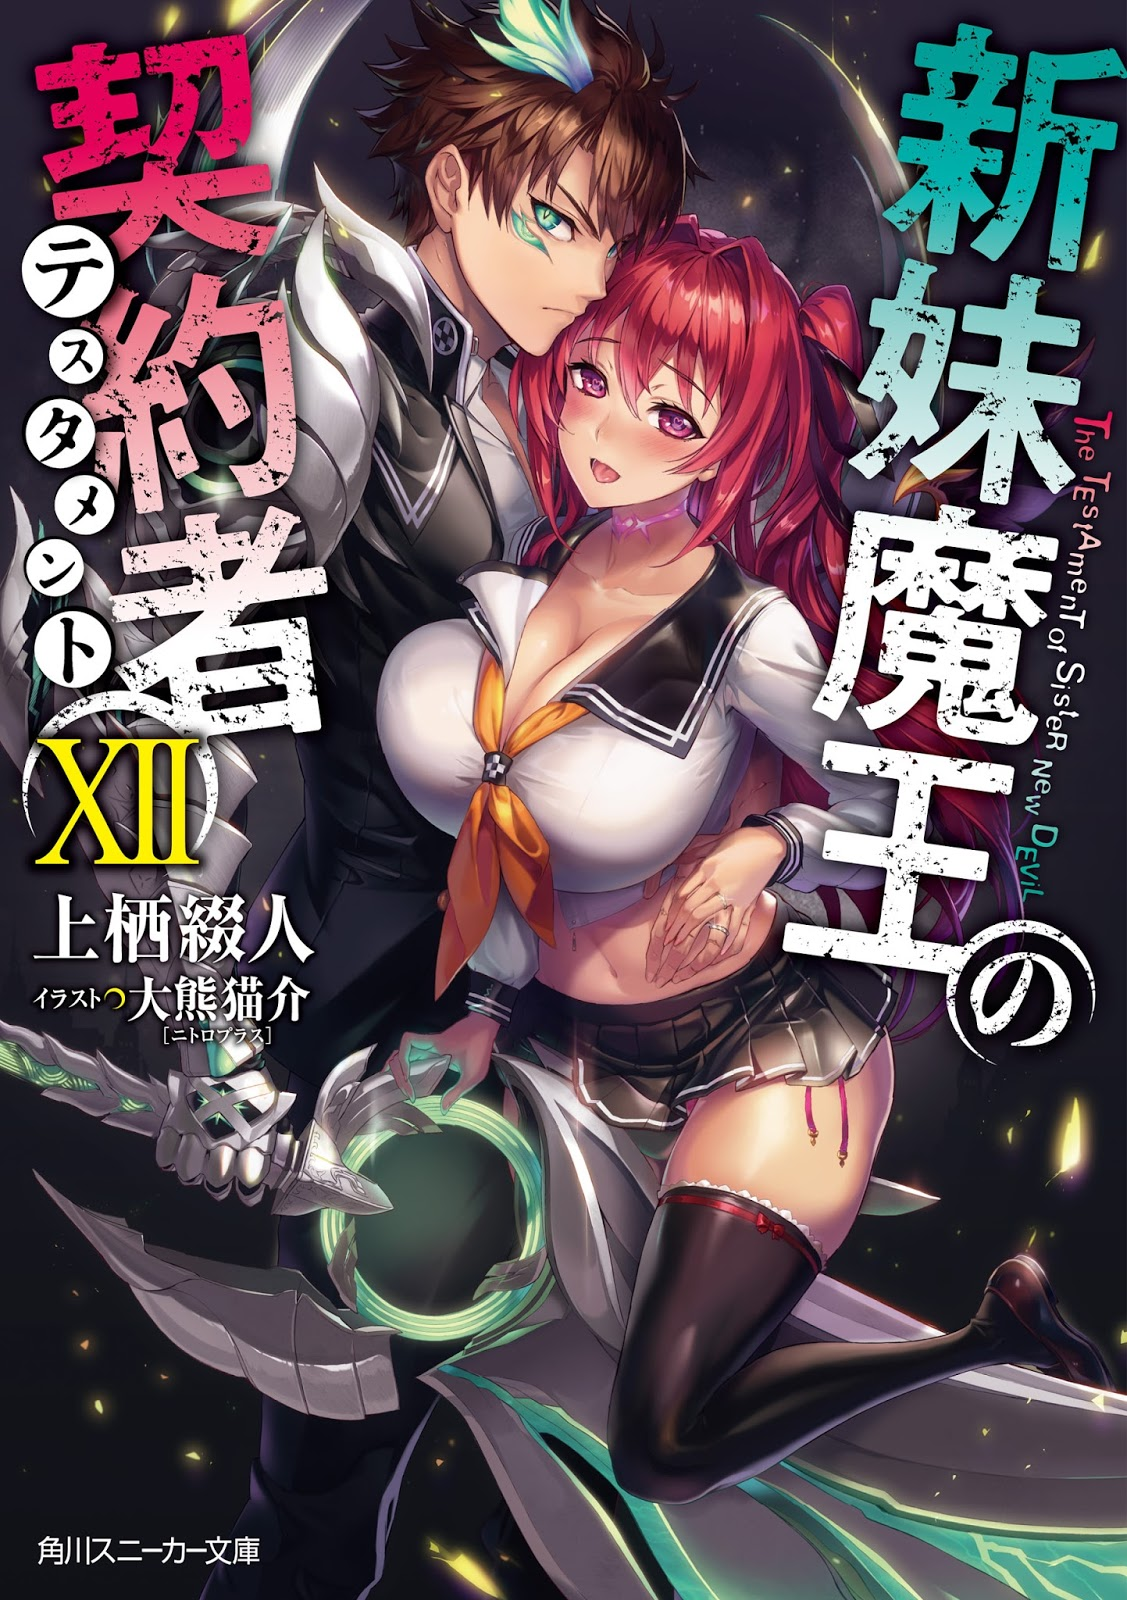 FULL HENTAI - Shinmai Maou Vol 12